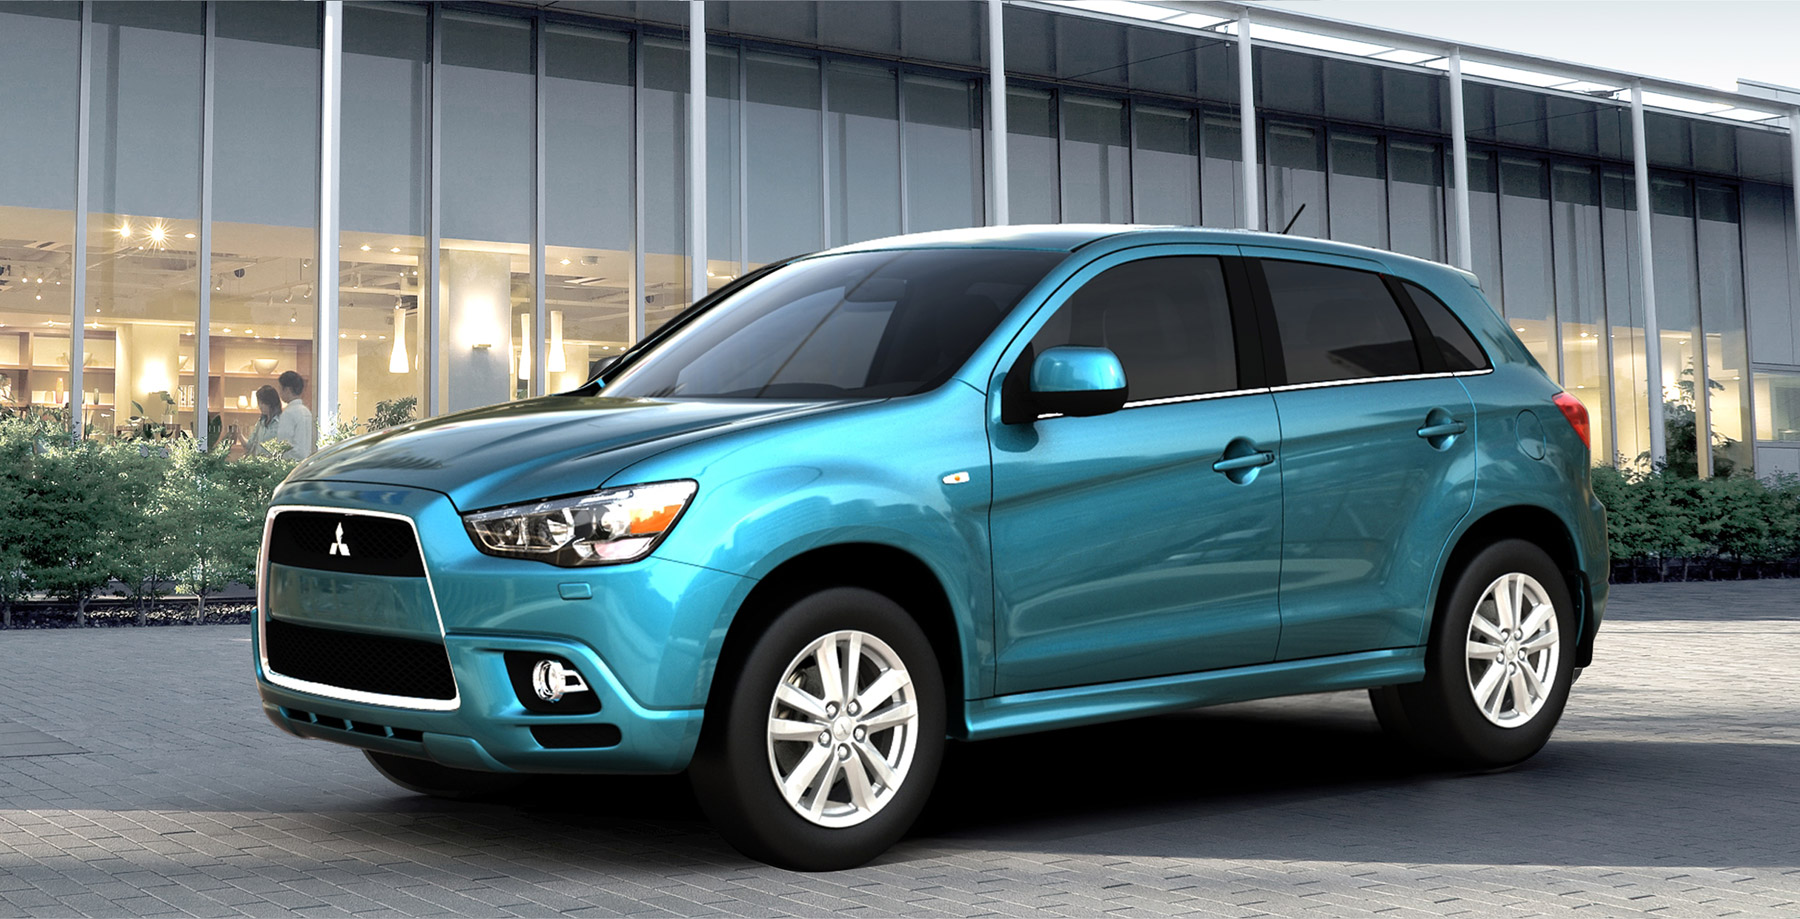 Once Driven Reviews >> Mitsubishi RVR Compact Crossover Unveiled - autoevolution